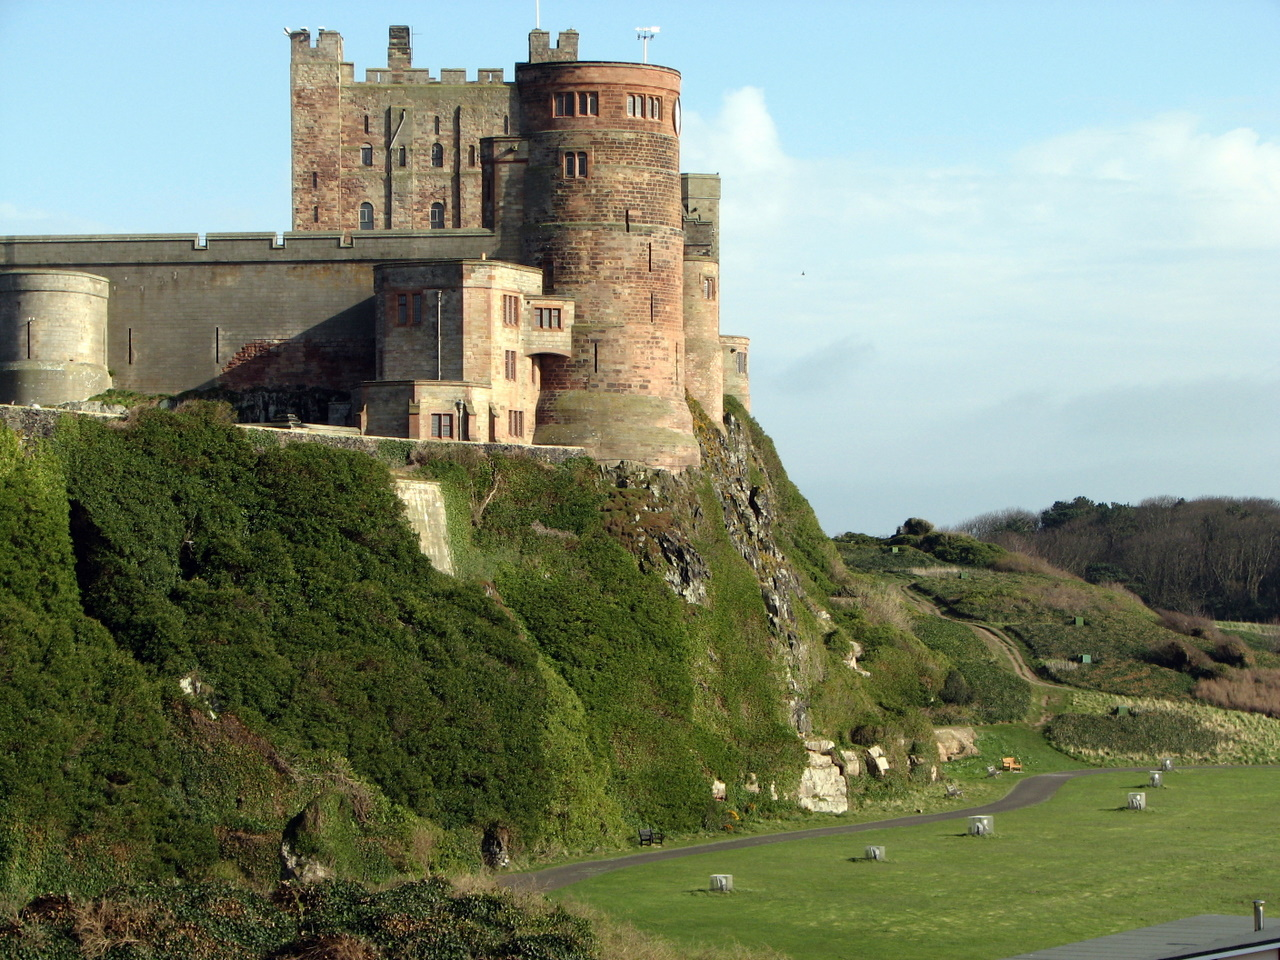 bamburgh castle - photo #5